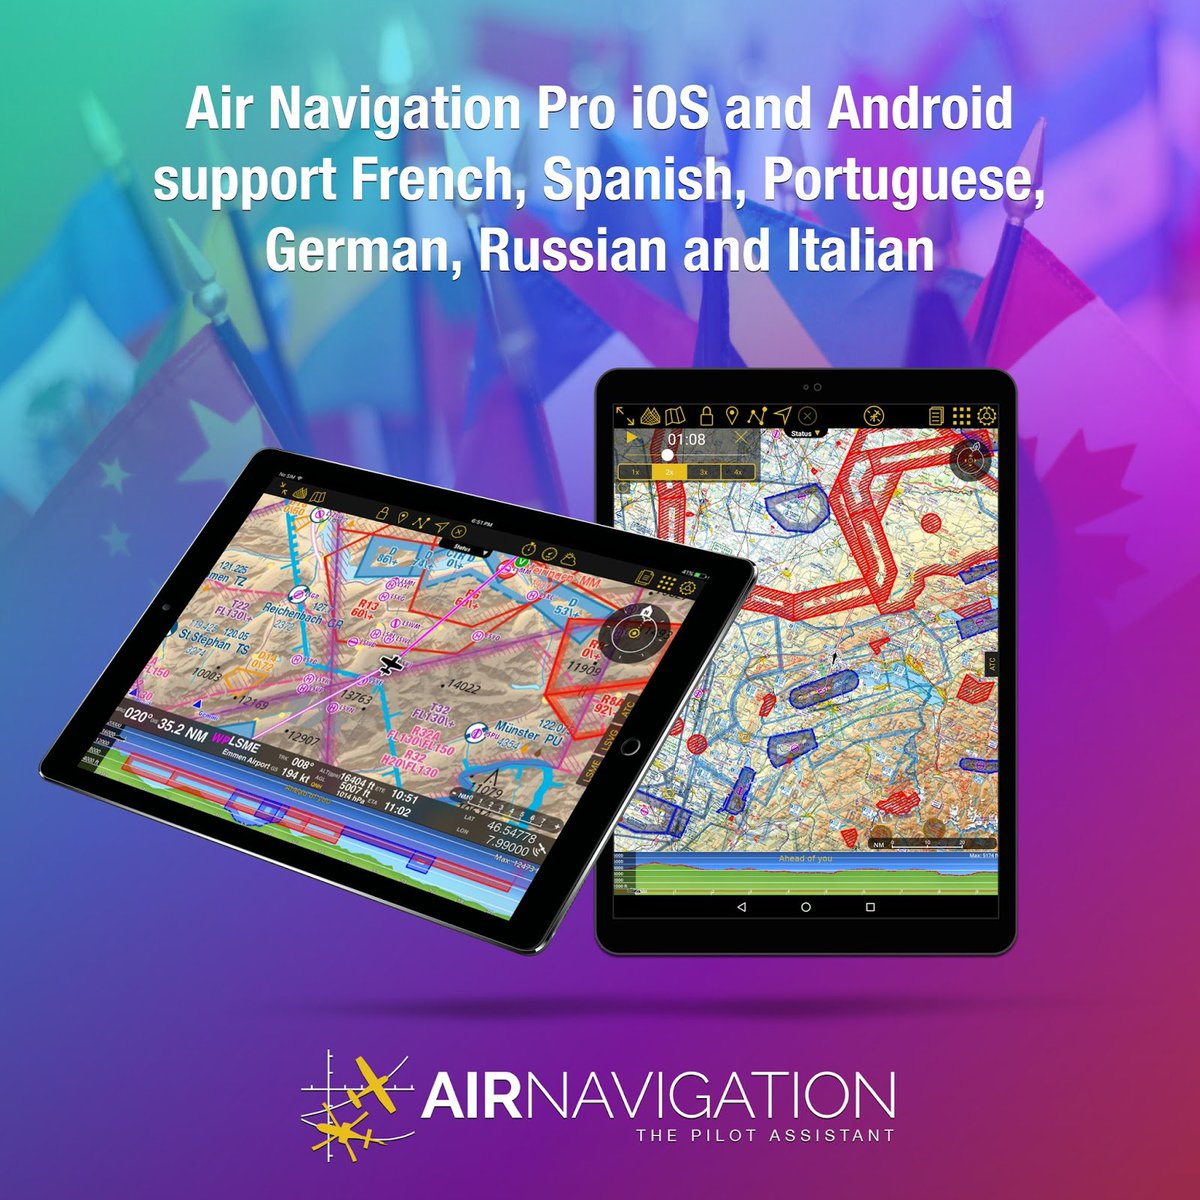 Awesome news! Support in French, Spanish, Portuguese, German, Russian and Italian are available for Air Navigation Pro iOS and Android. For more information, check out:  http:// blog.airnavigation.aero/2017/11/additi onal-language-support-for-air.html &nbsp; …   #avgeek #aviation #avapp #flightplanning #flightapp #pilotapp<br>http://pic.twitter.com/yrL6aOd3KW